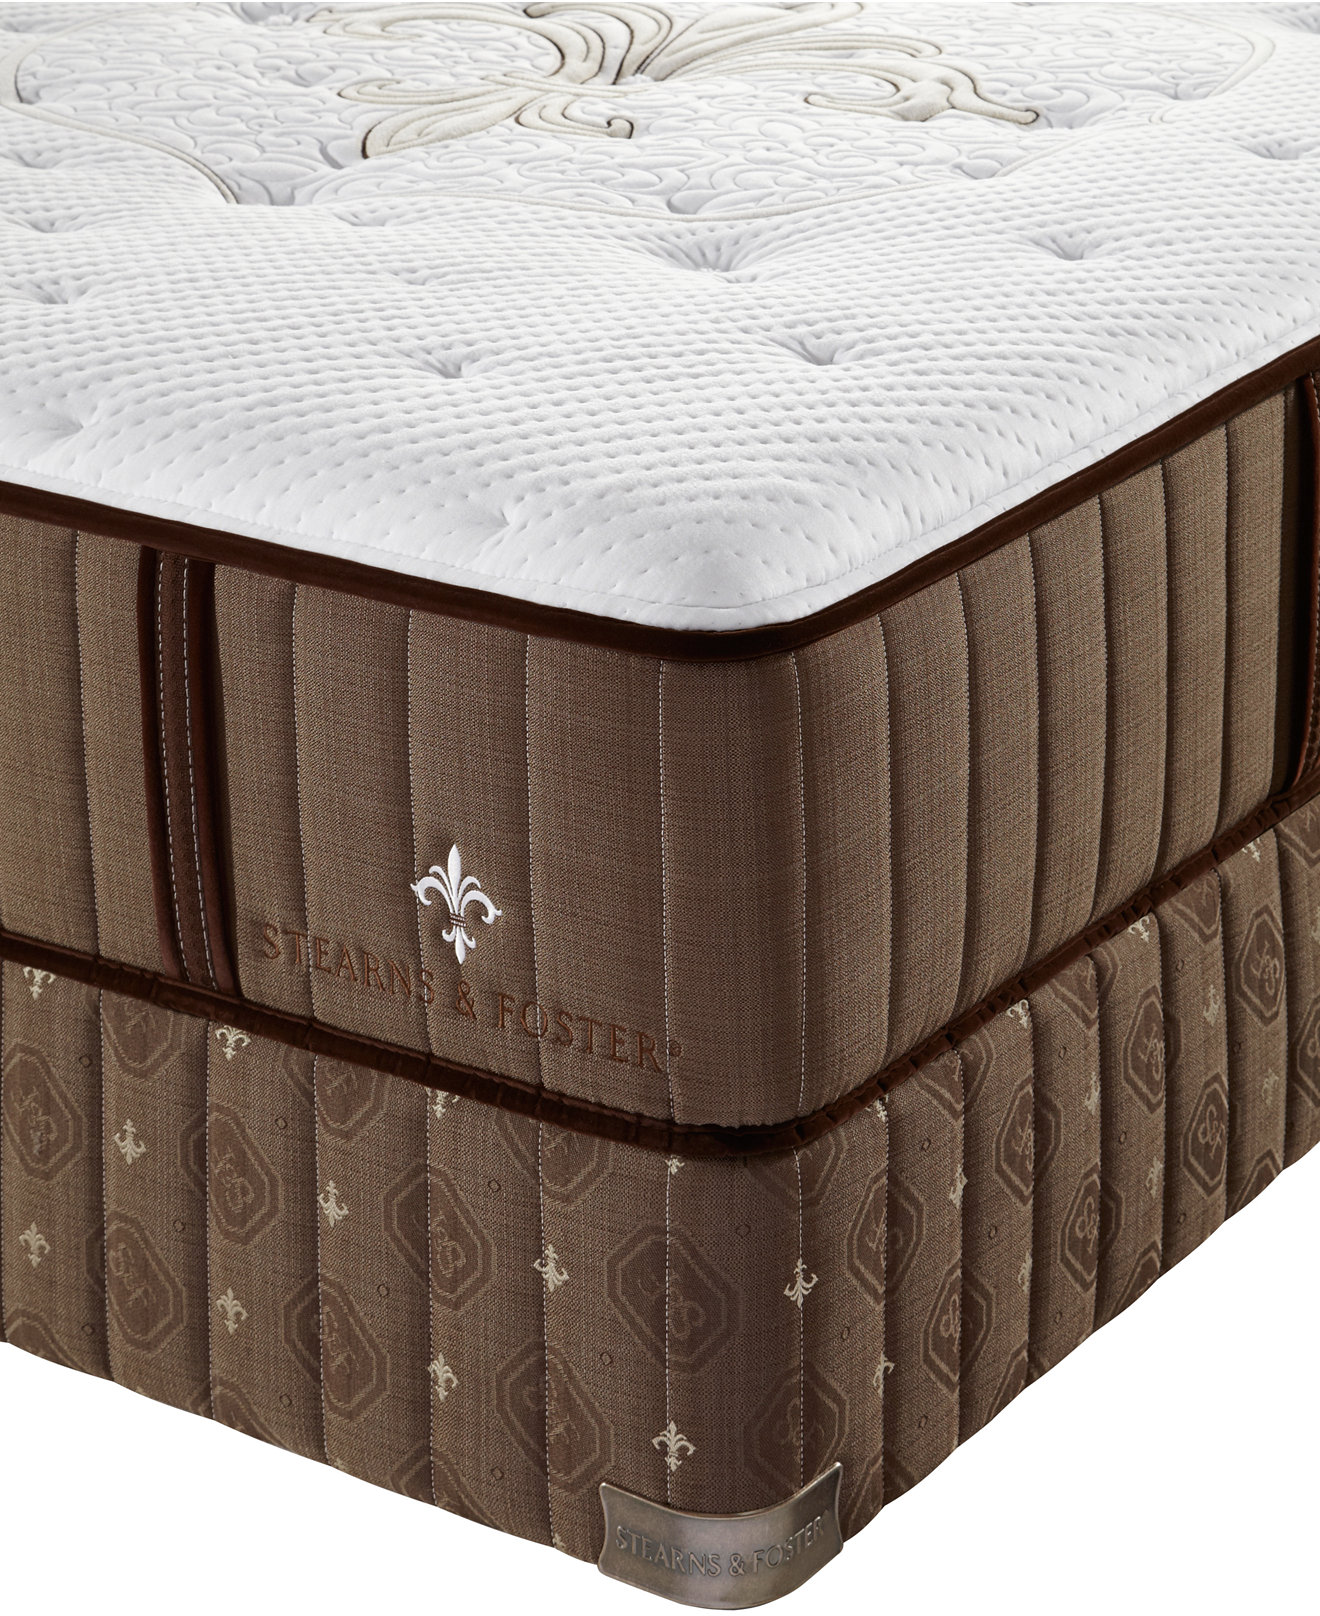 Stearns Foster Mattress Reviews